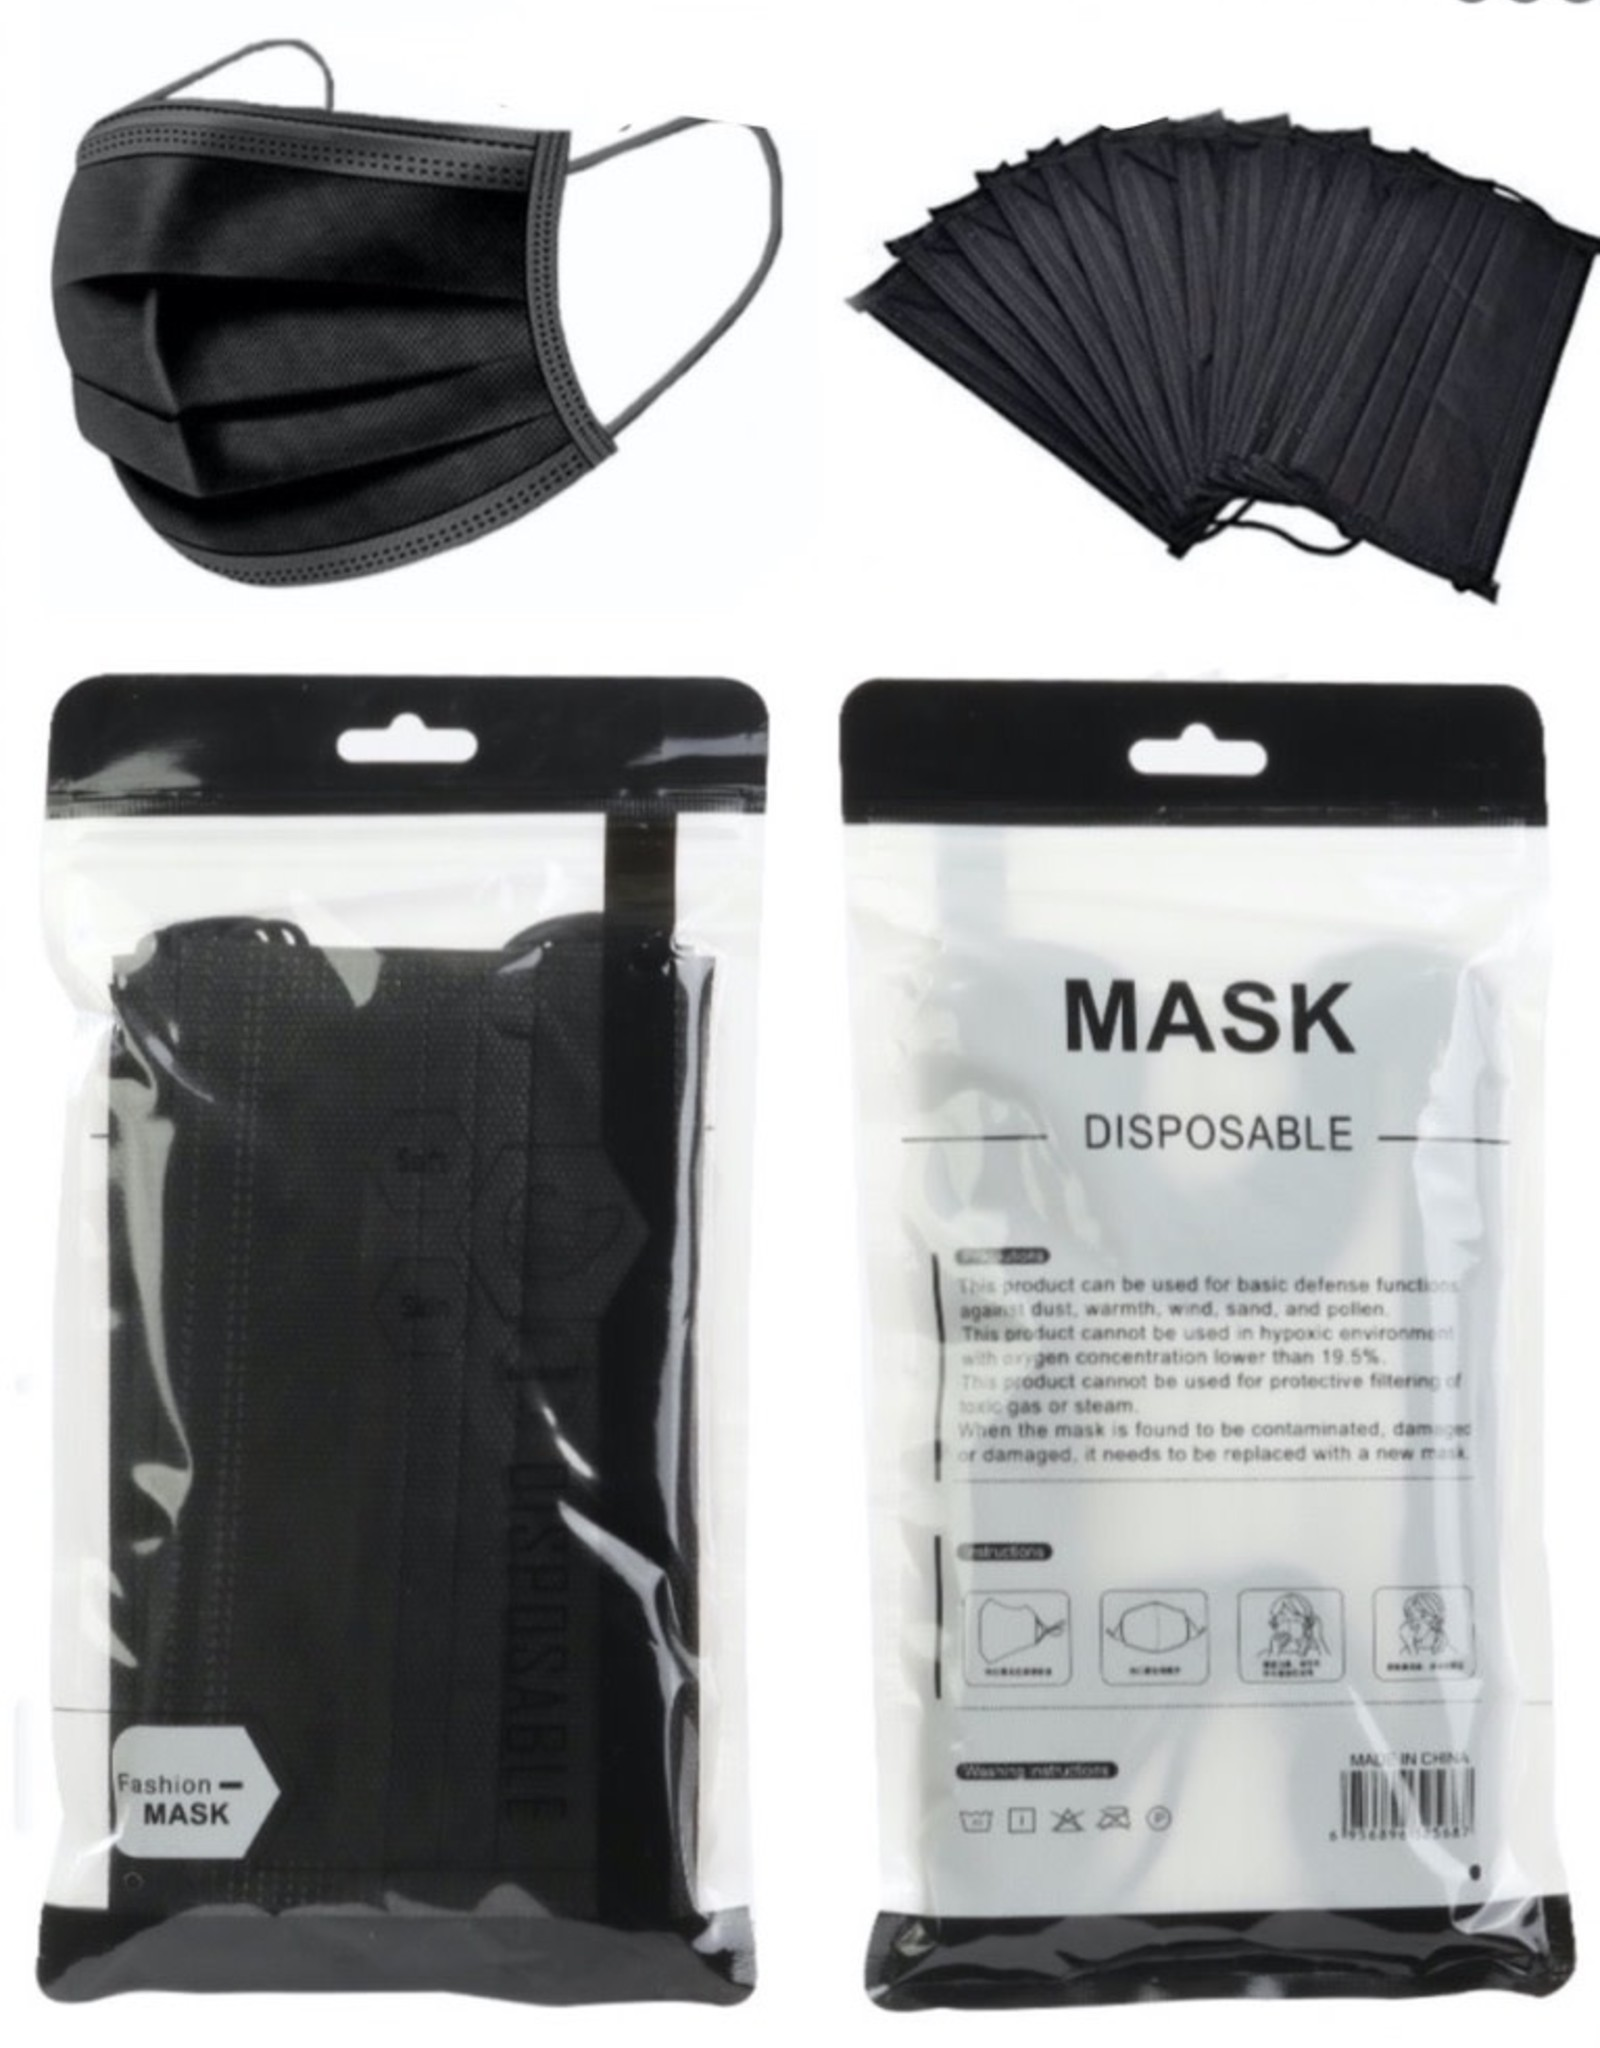 FACE MASK 50 PACK DISPOSABLE BLACK